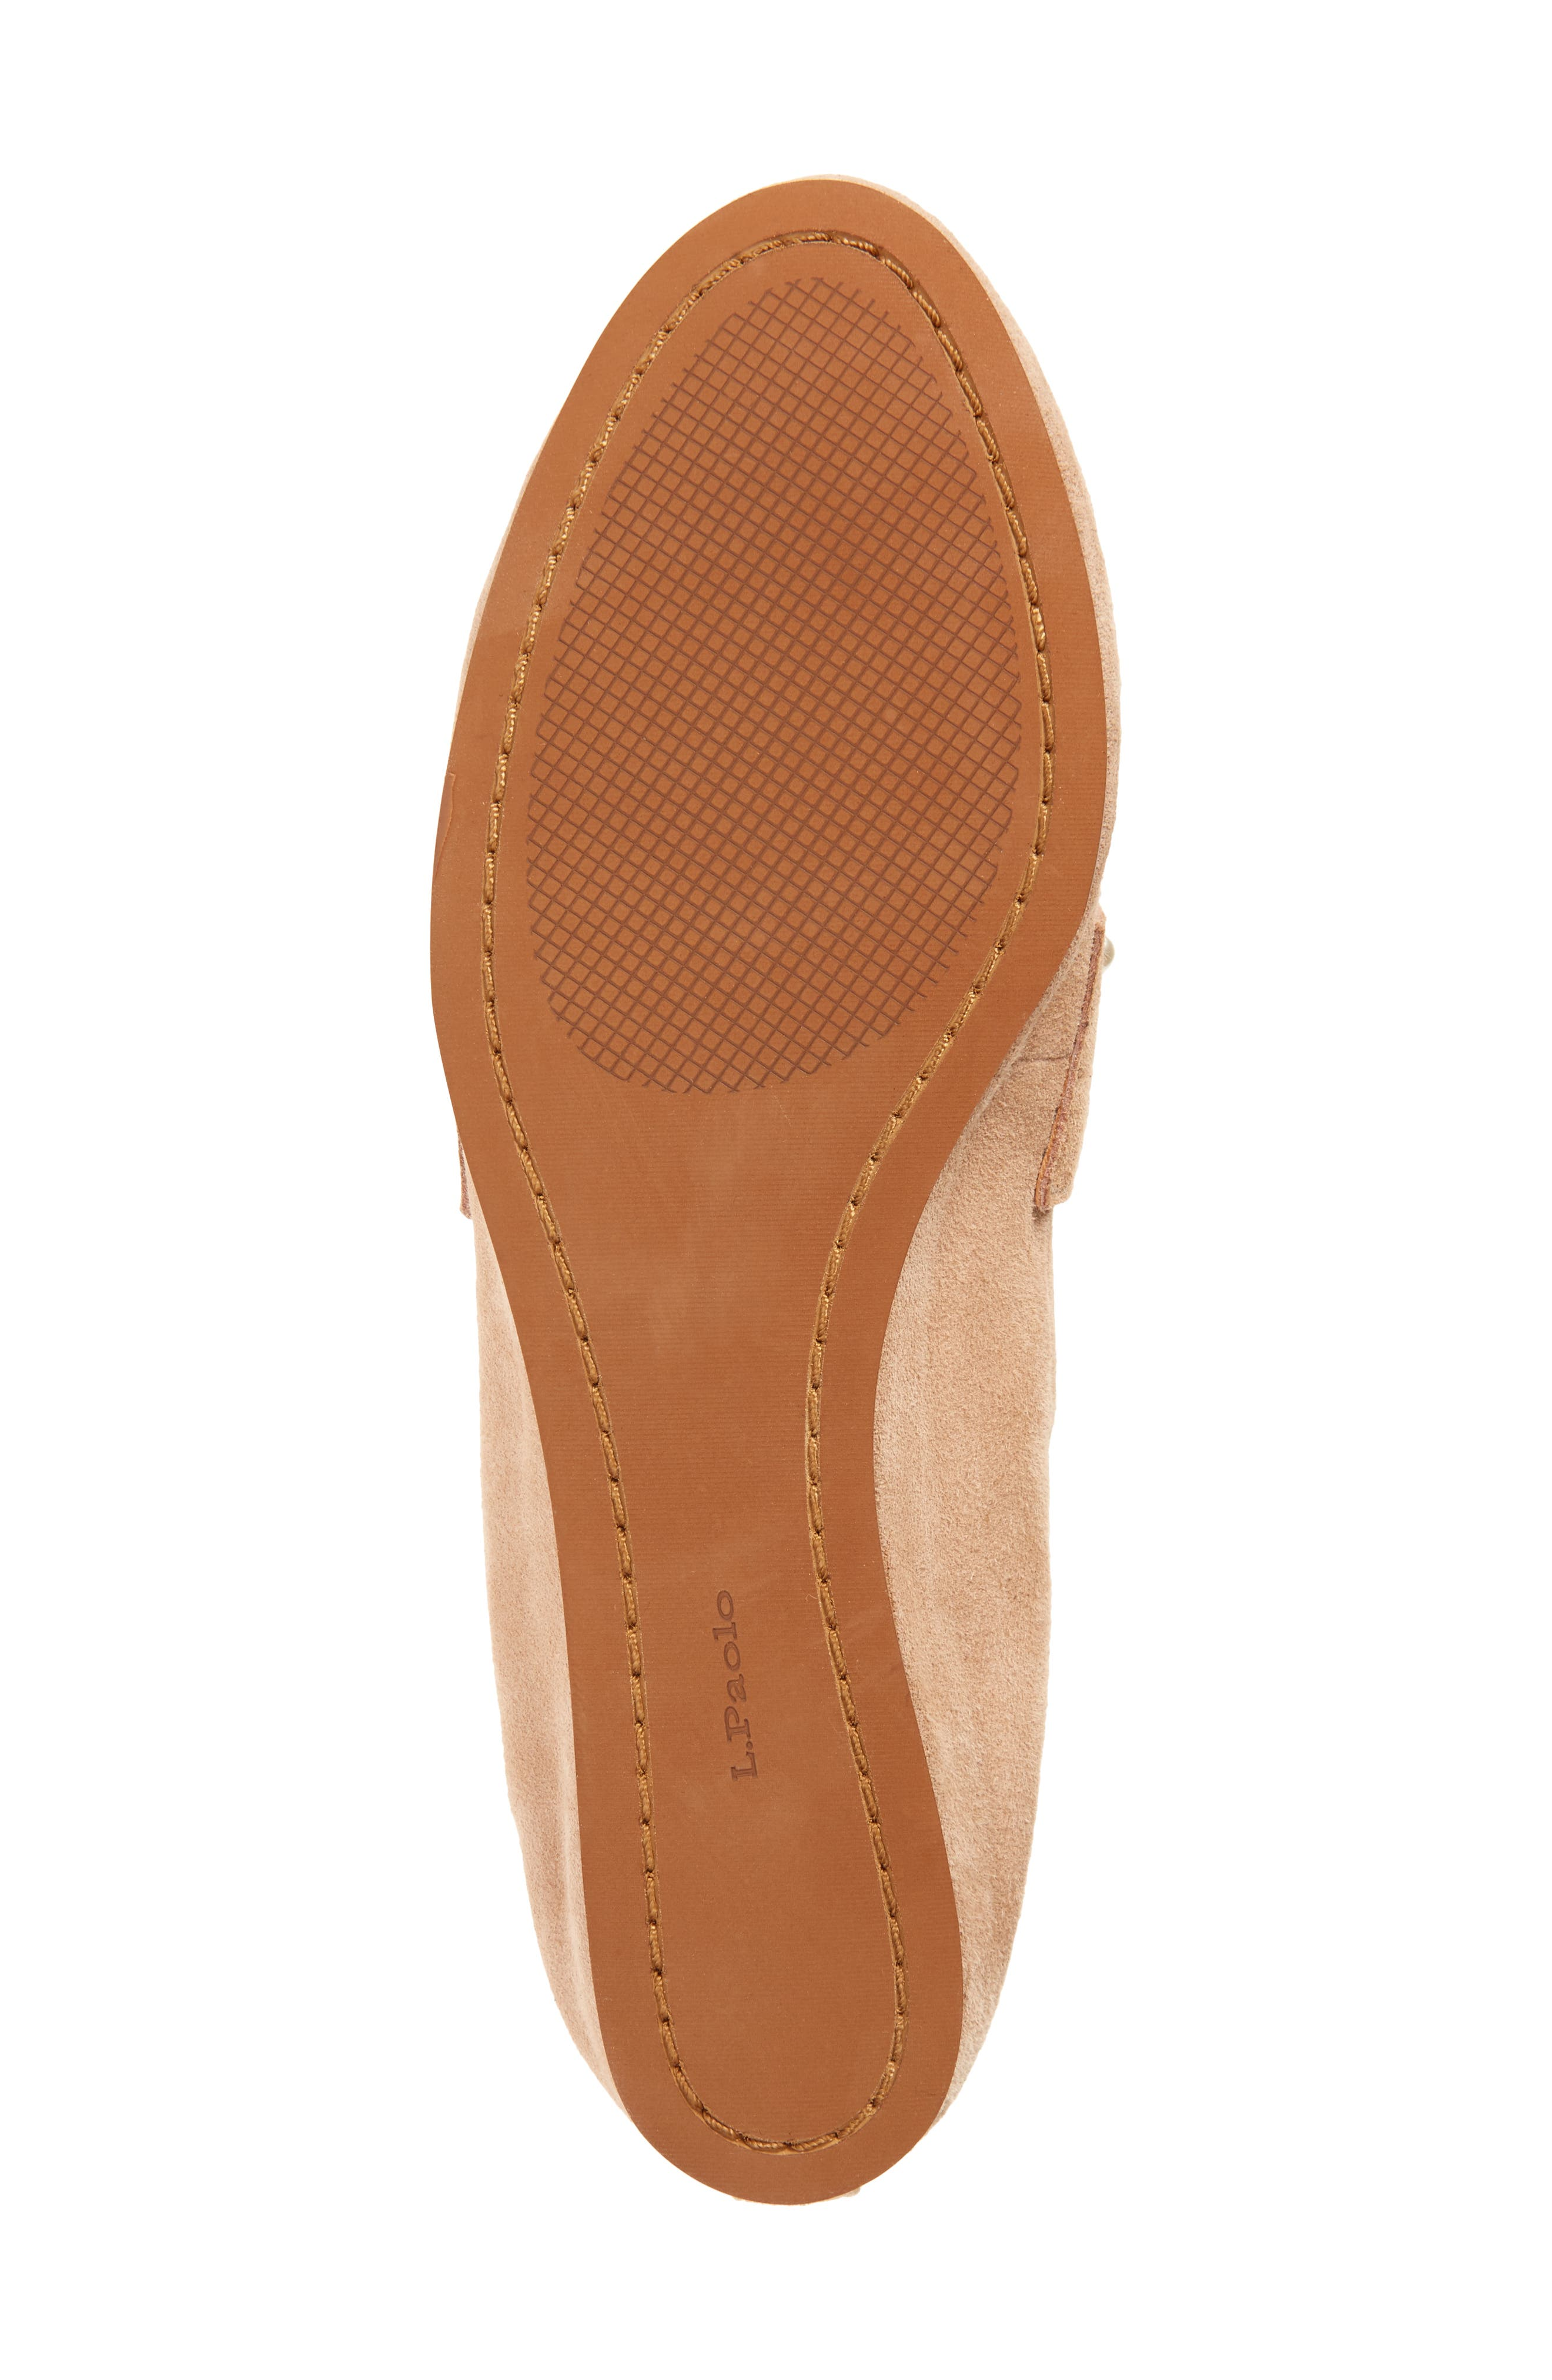 Milly Loafer,                             Alternate thumbnail 18, color,